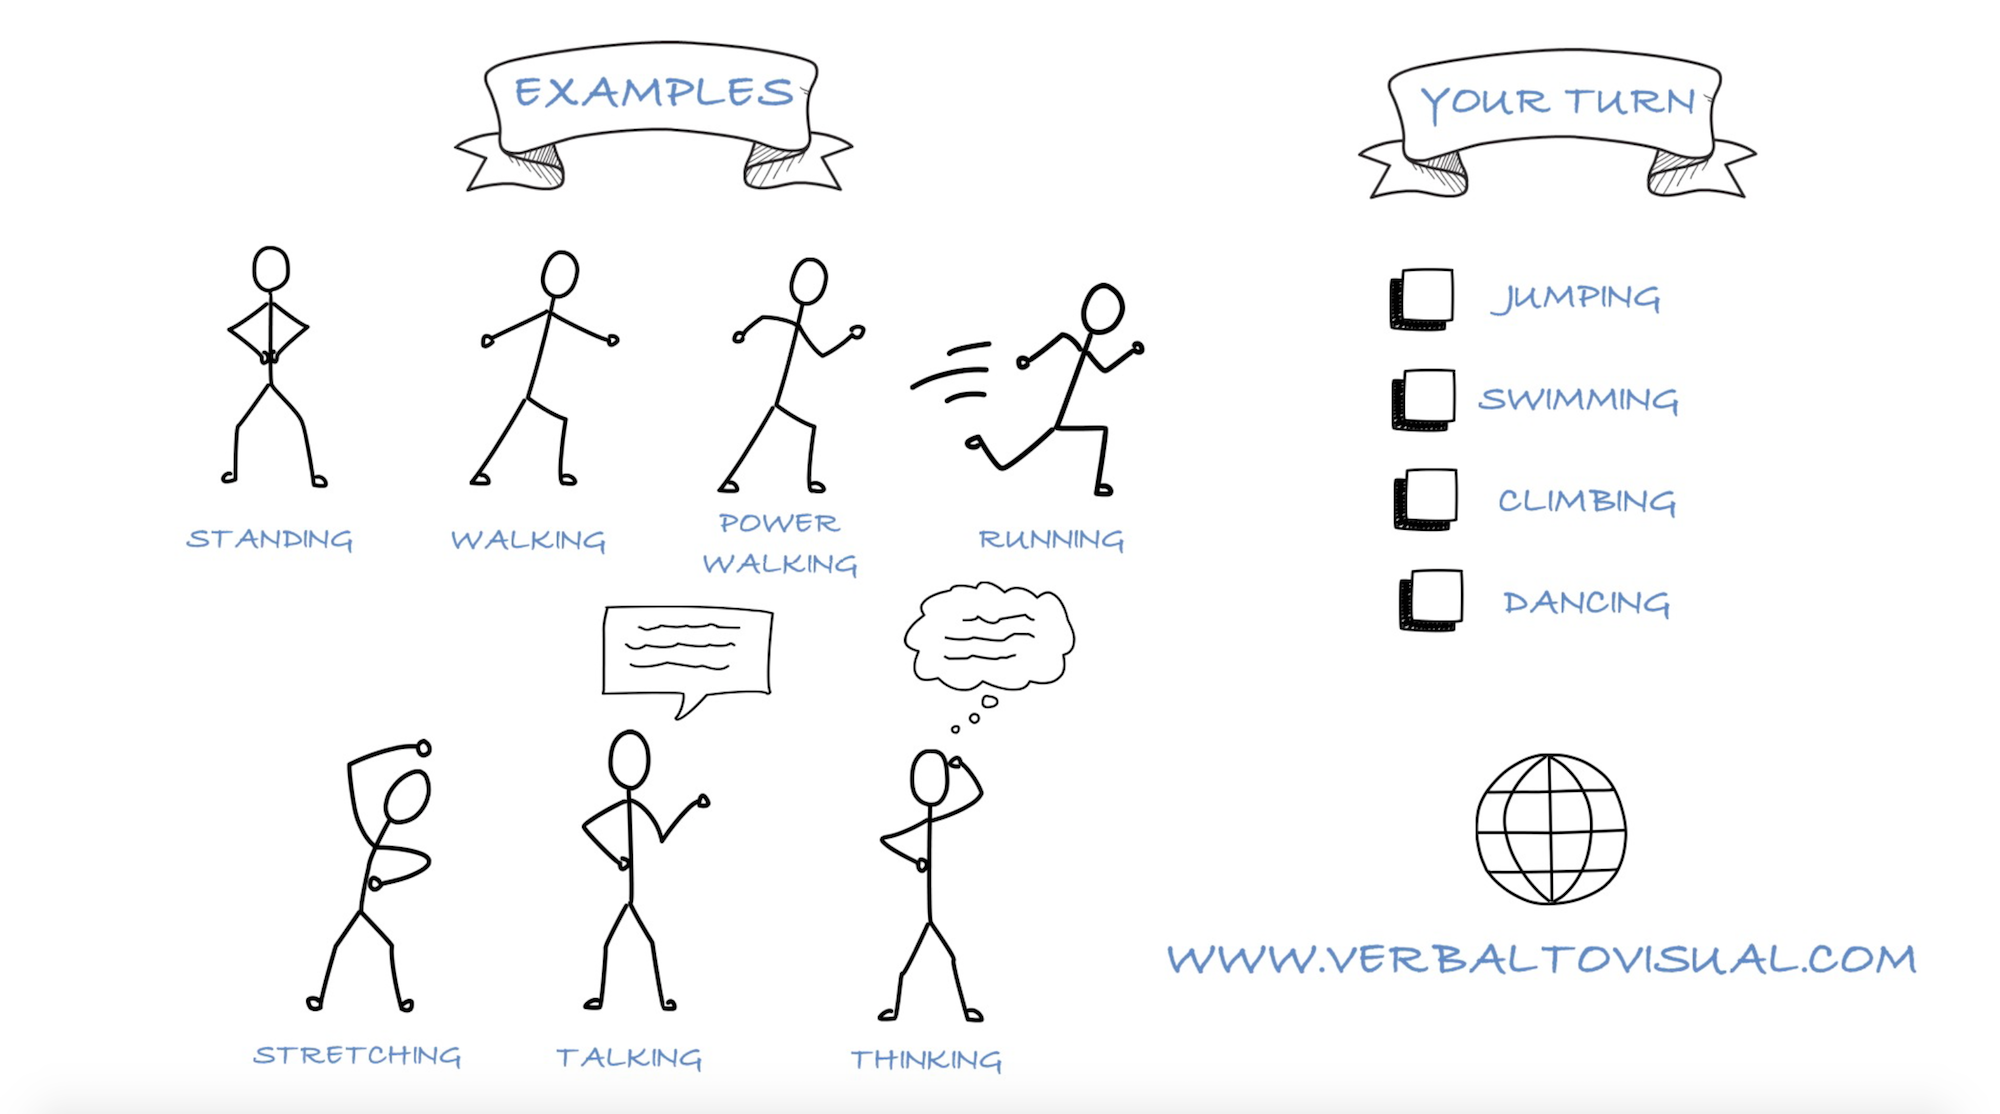 How To Draw Stick Figures That Express Verbs - Verbal To Visual